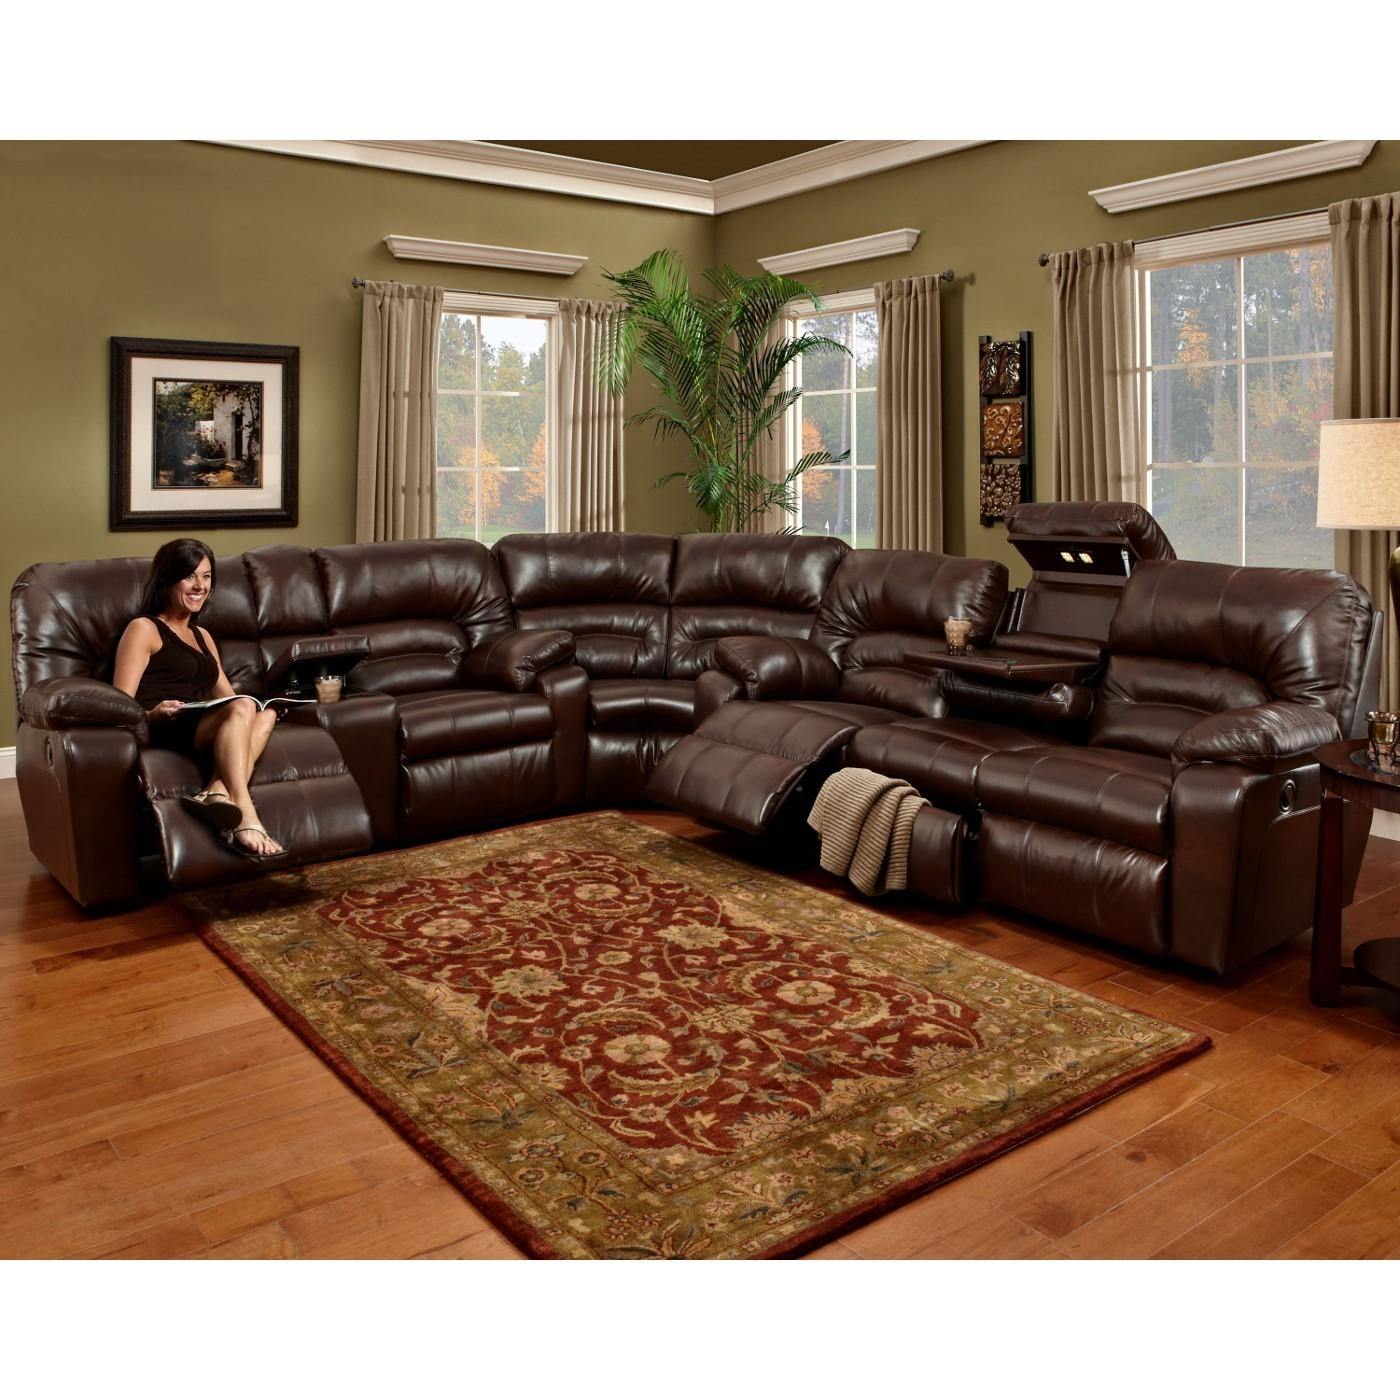 Media Room Sectional Sofas Artistic Color Decor Best With Media For Media Room Sectional Sofas (Image 8 of 20)